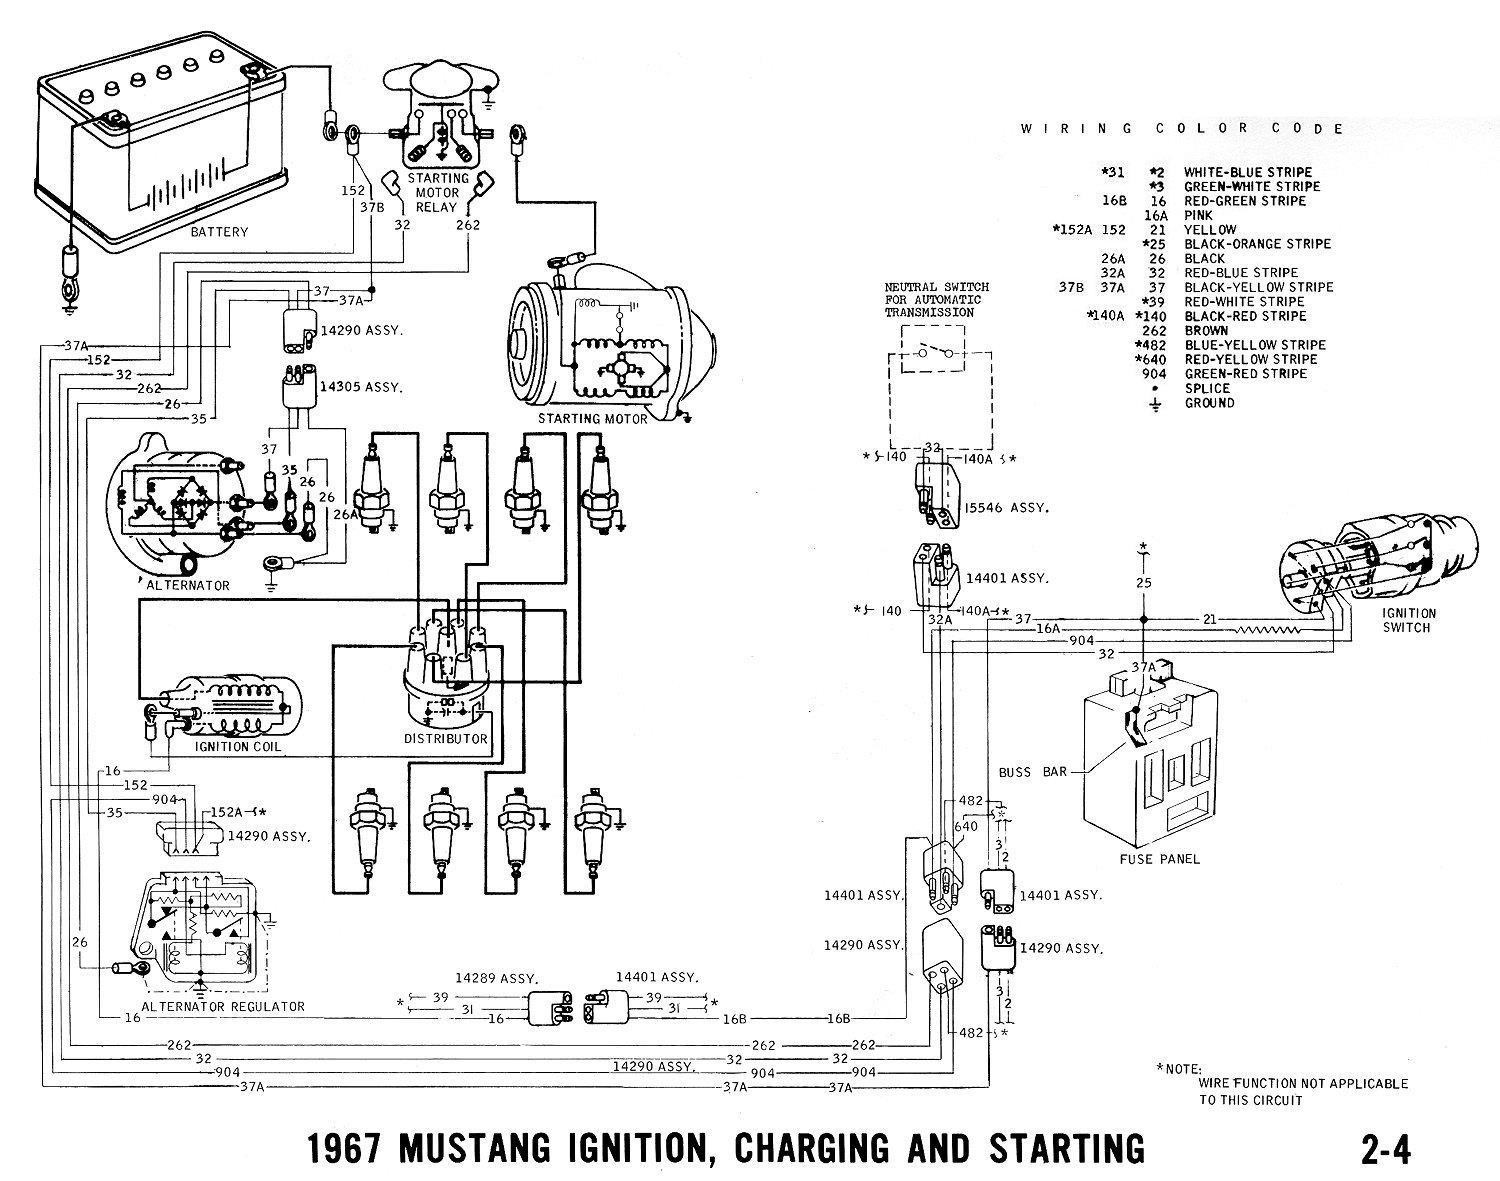 hight resolution of 1968 ford mustang wiring harness schematic wiring diagram 1968 ford mustang alternator wiring harness schematic diagram